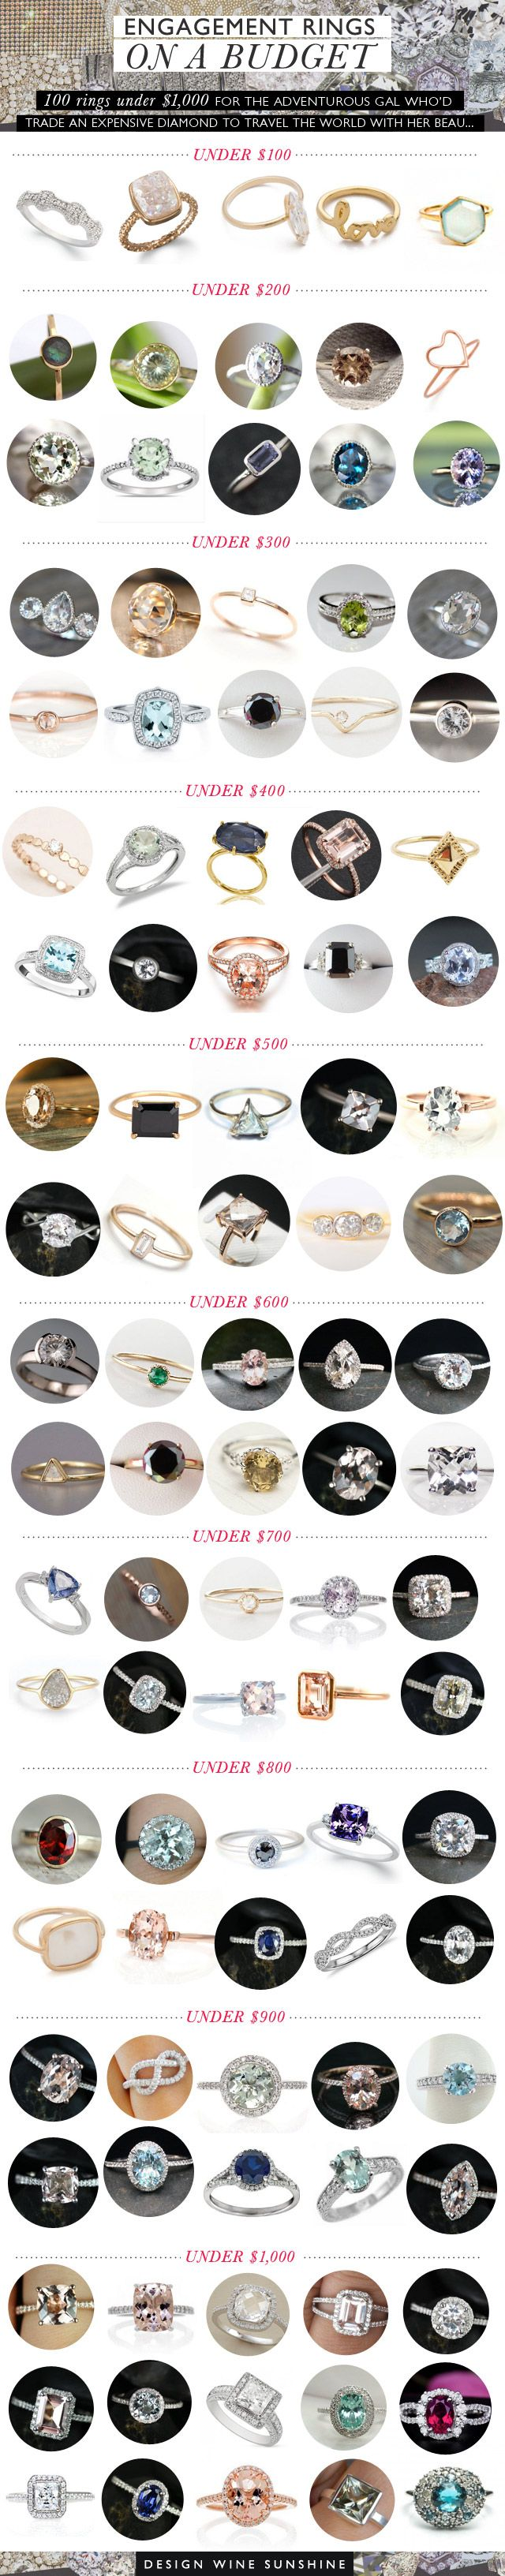 100 Beautiful Engagement Rings on a Happy Budget, via Design Wine Sunshine #engagement #ring #affordable